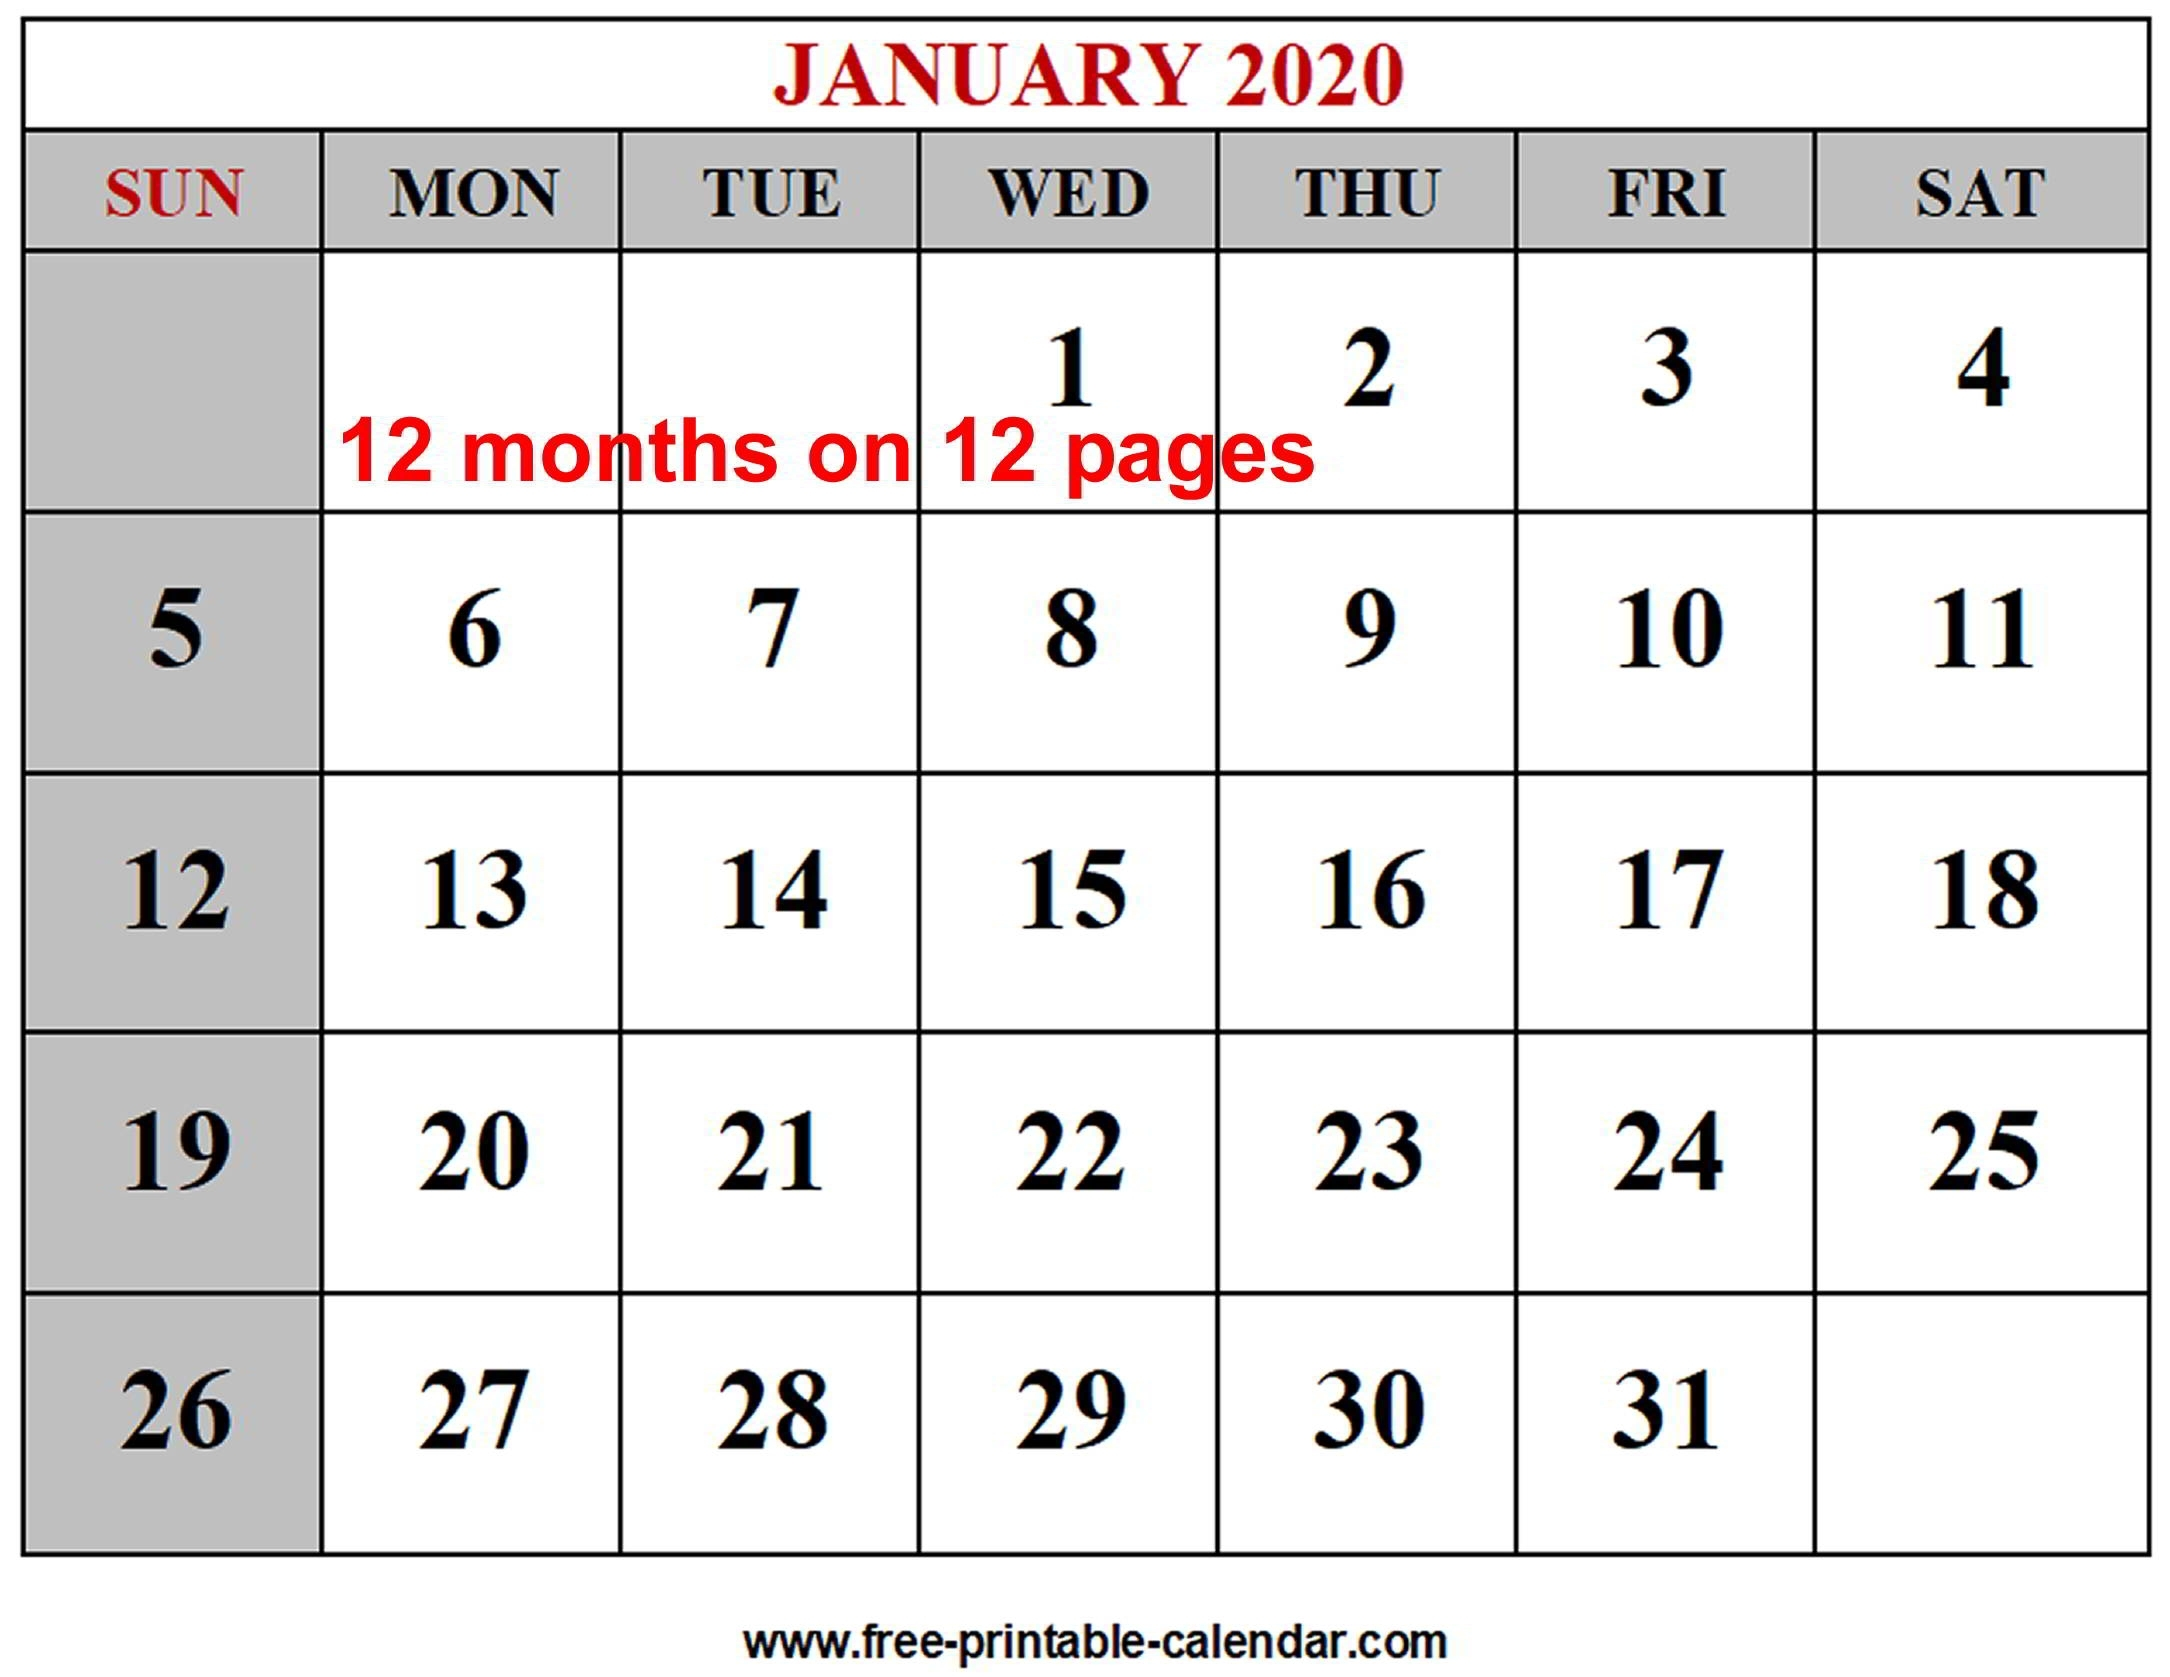 Year 2020 Calendar Templates - Free-Printable-Calendar pertaining to 2020 Free 12 Month Printable Monthly Calendar